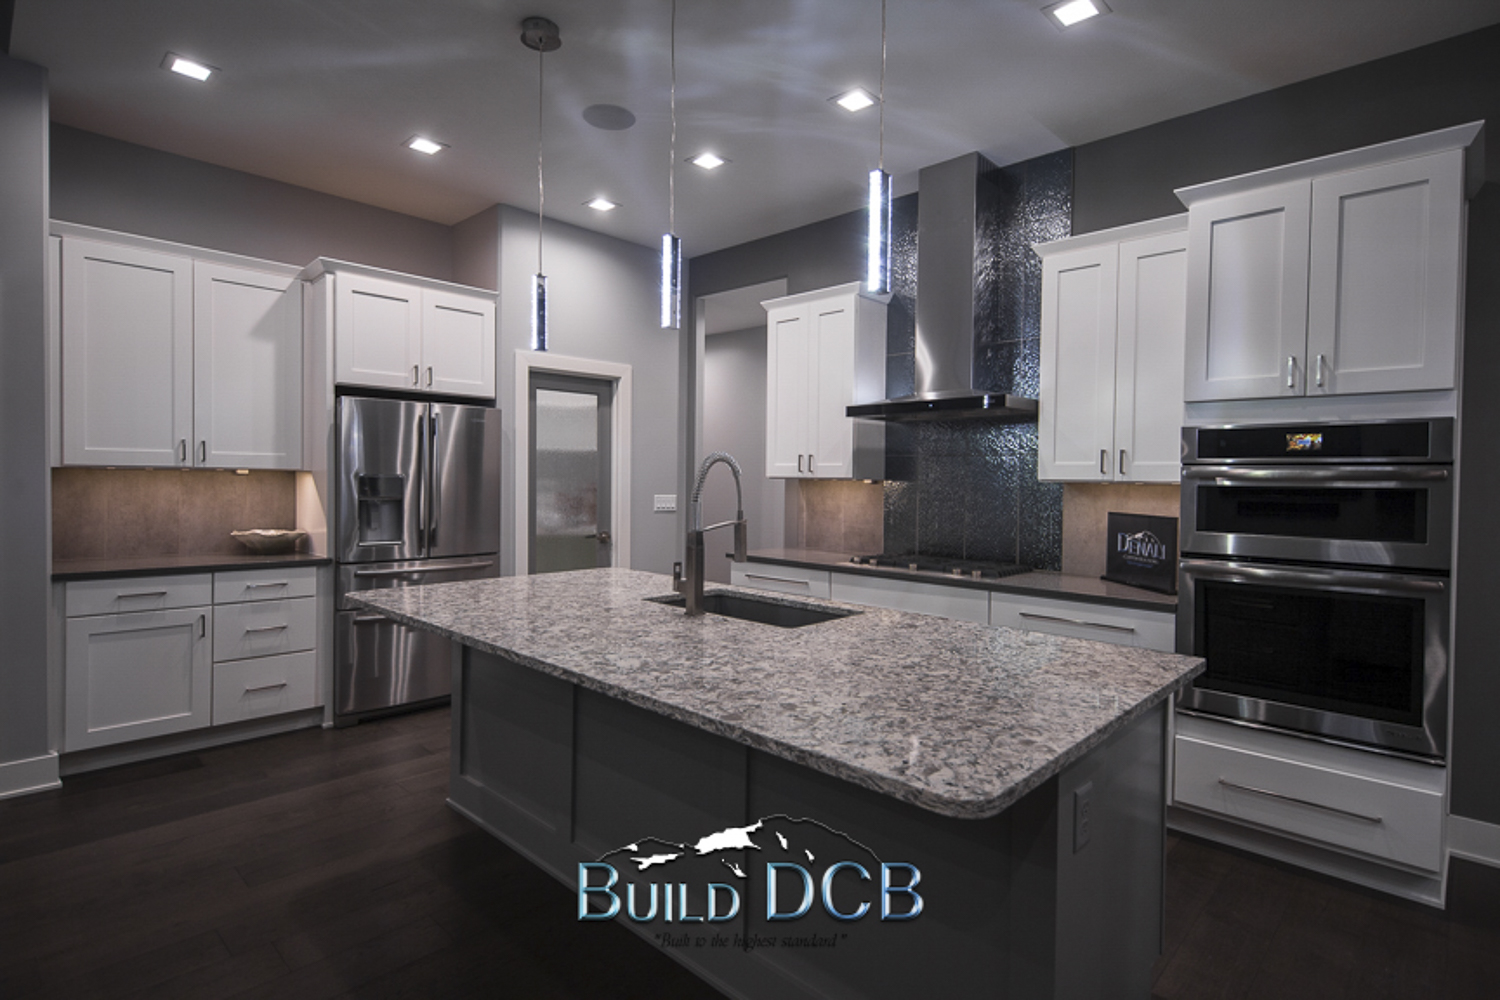 custom cabinets and kitchen design